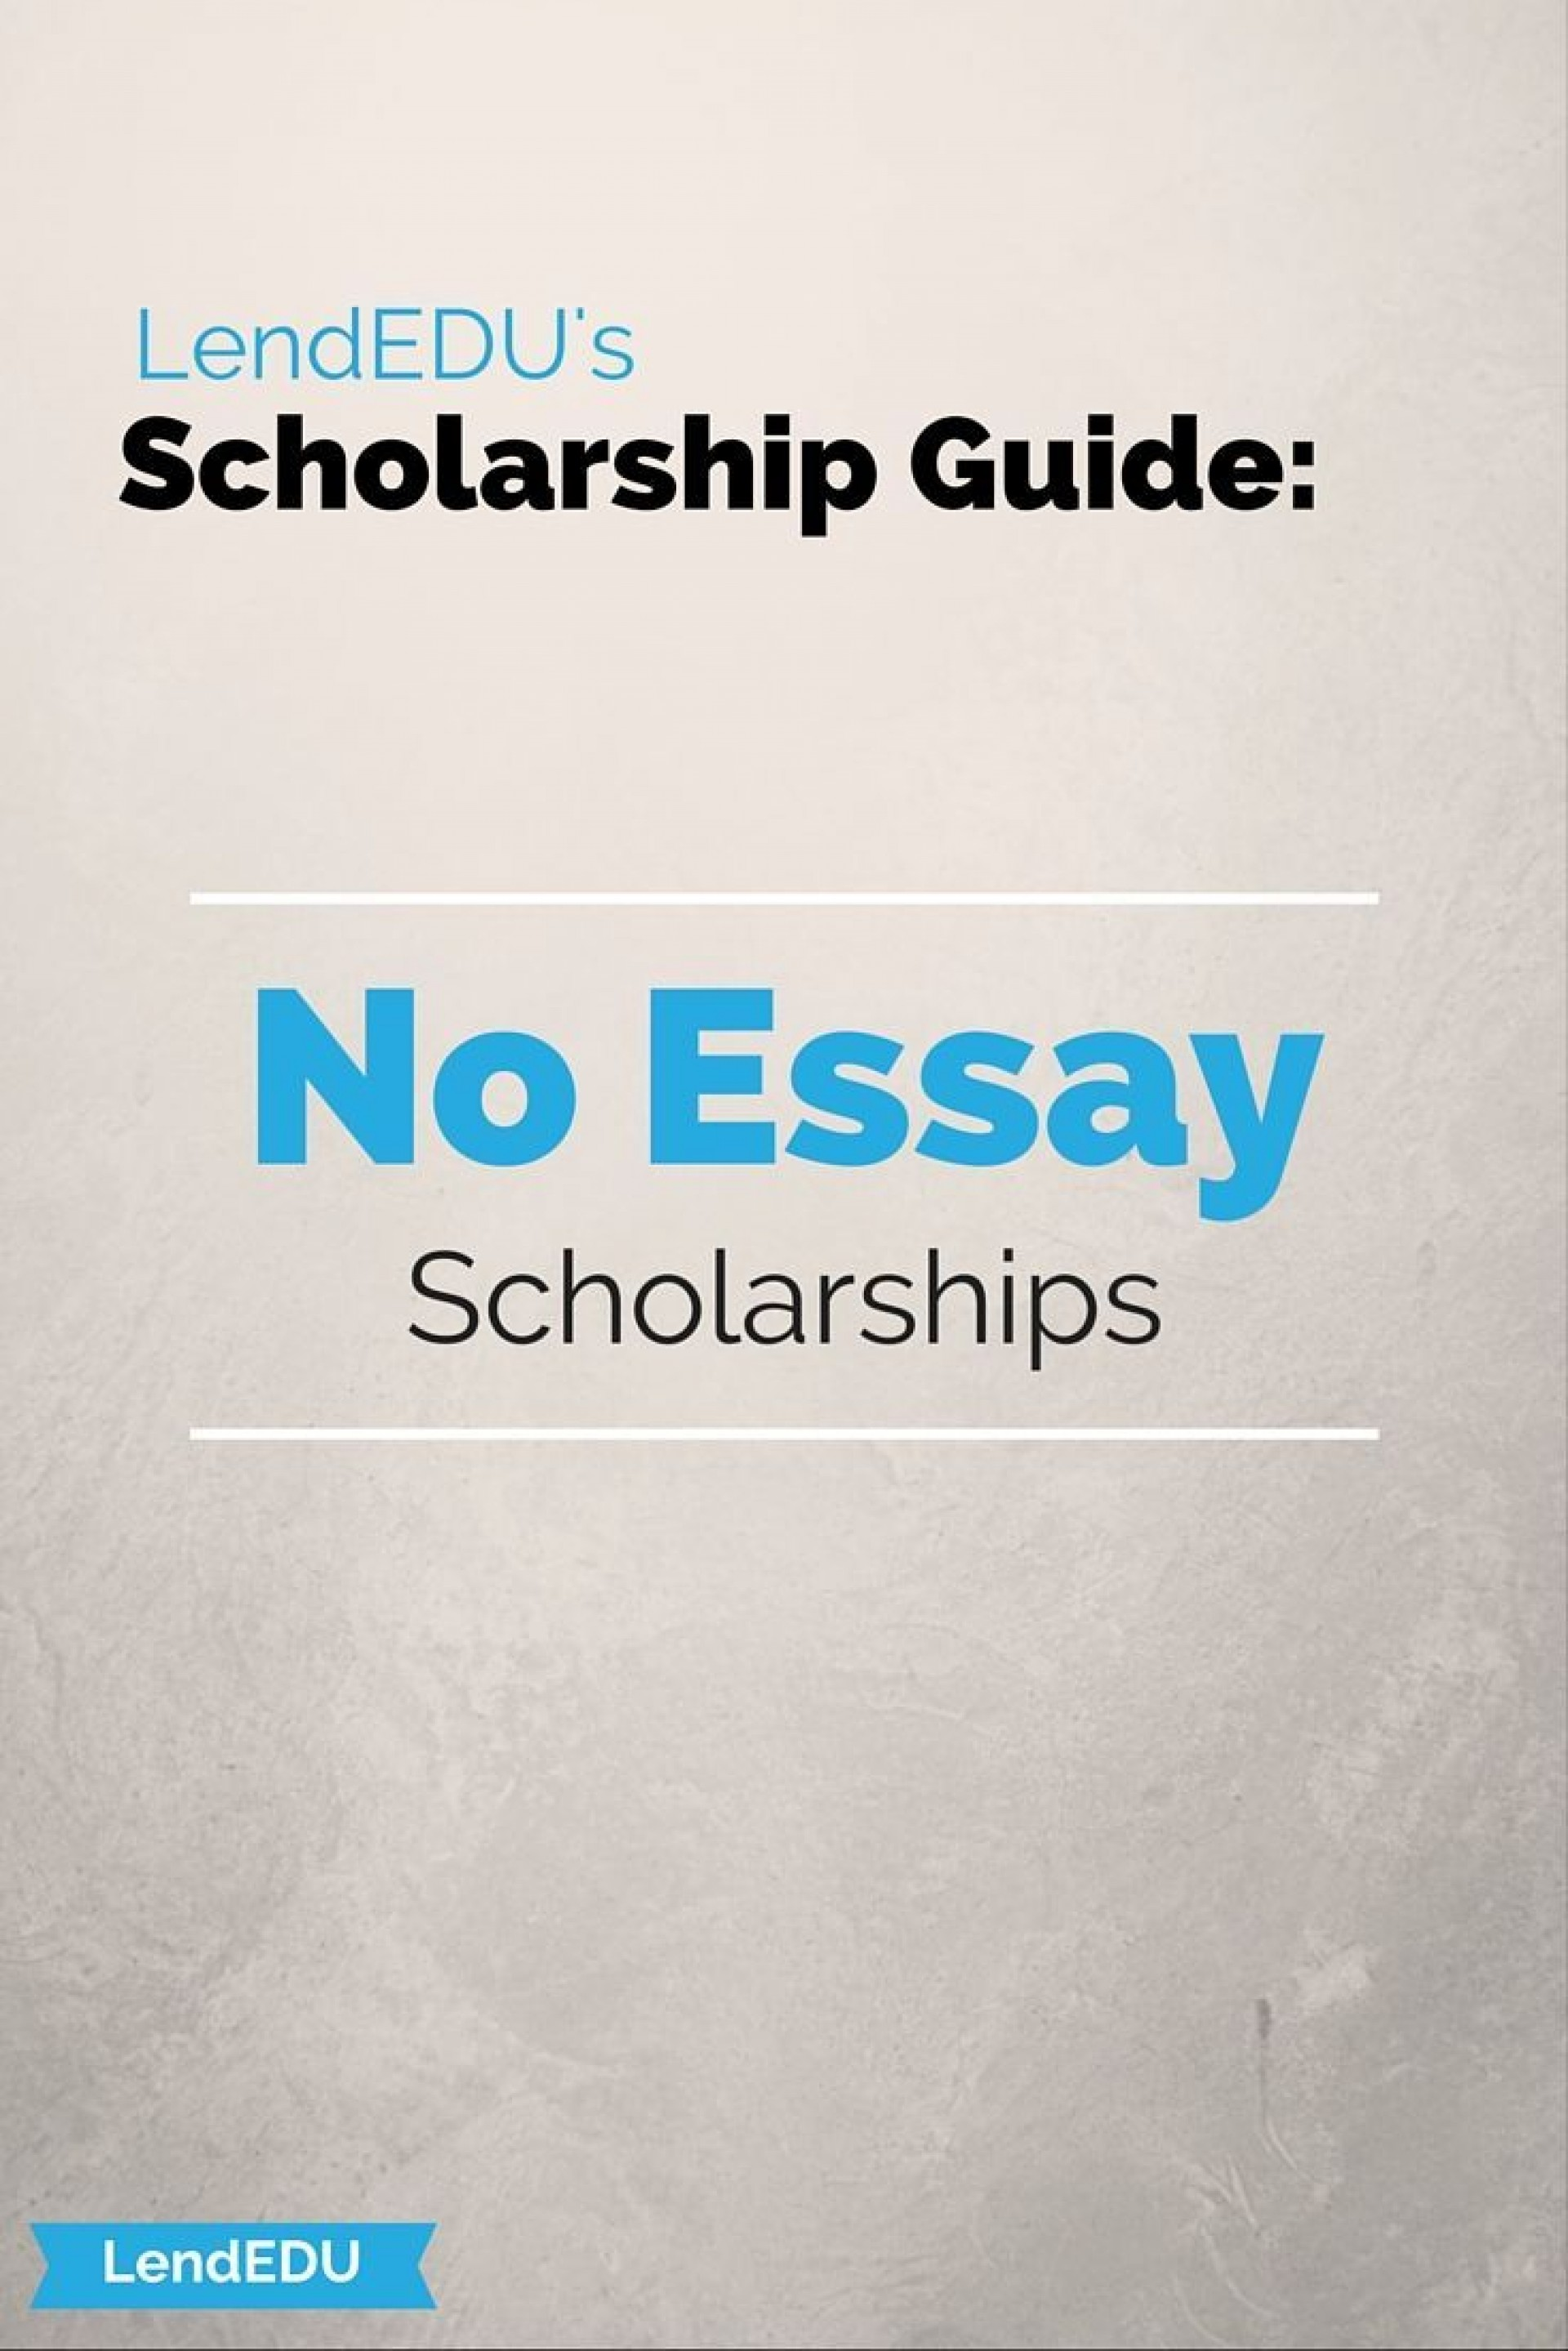 018 No Essay Scholarships Example Exceptional For Undergraduates High School Seniors College Students 2019 1920